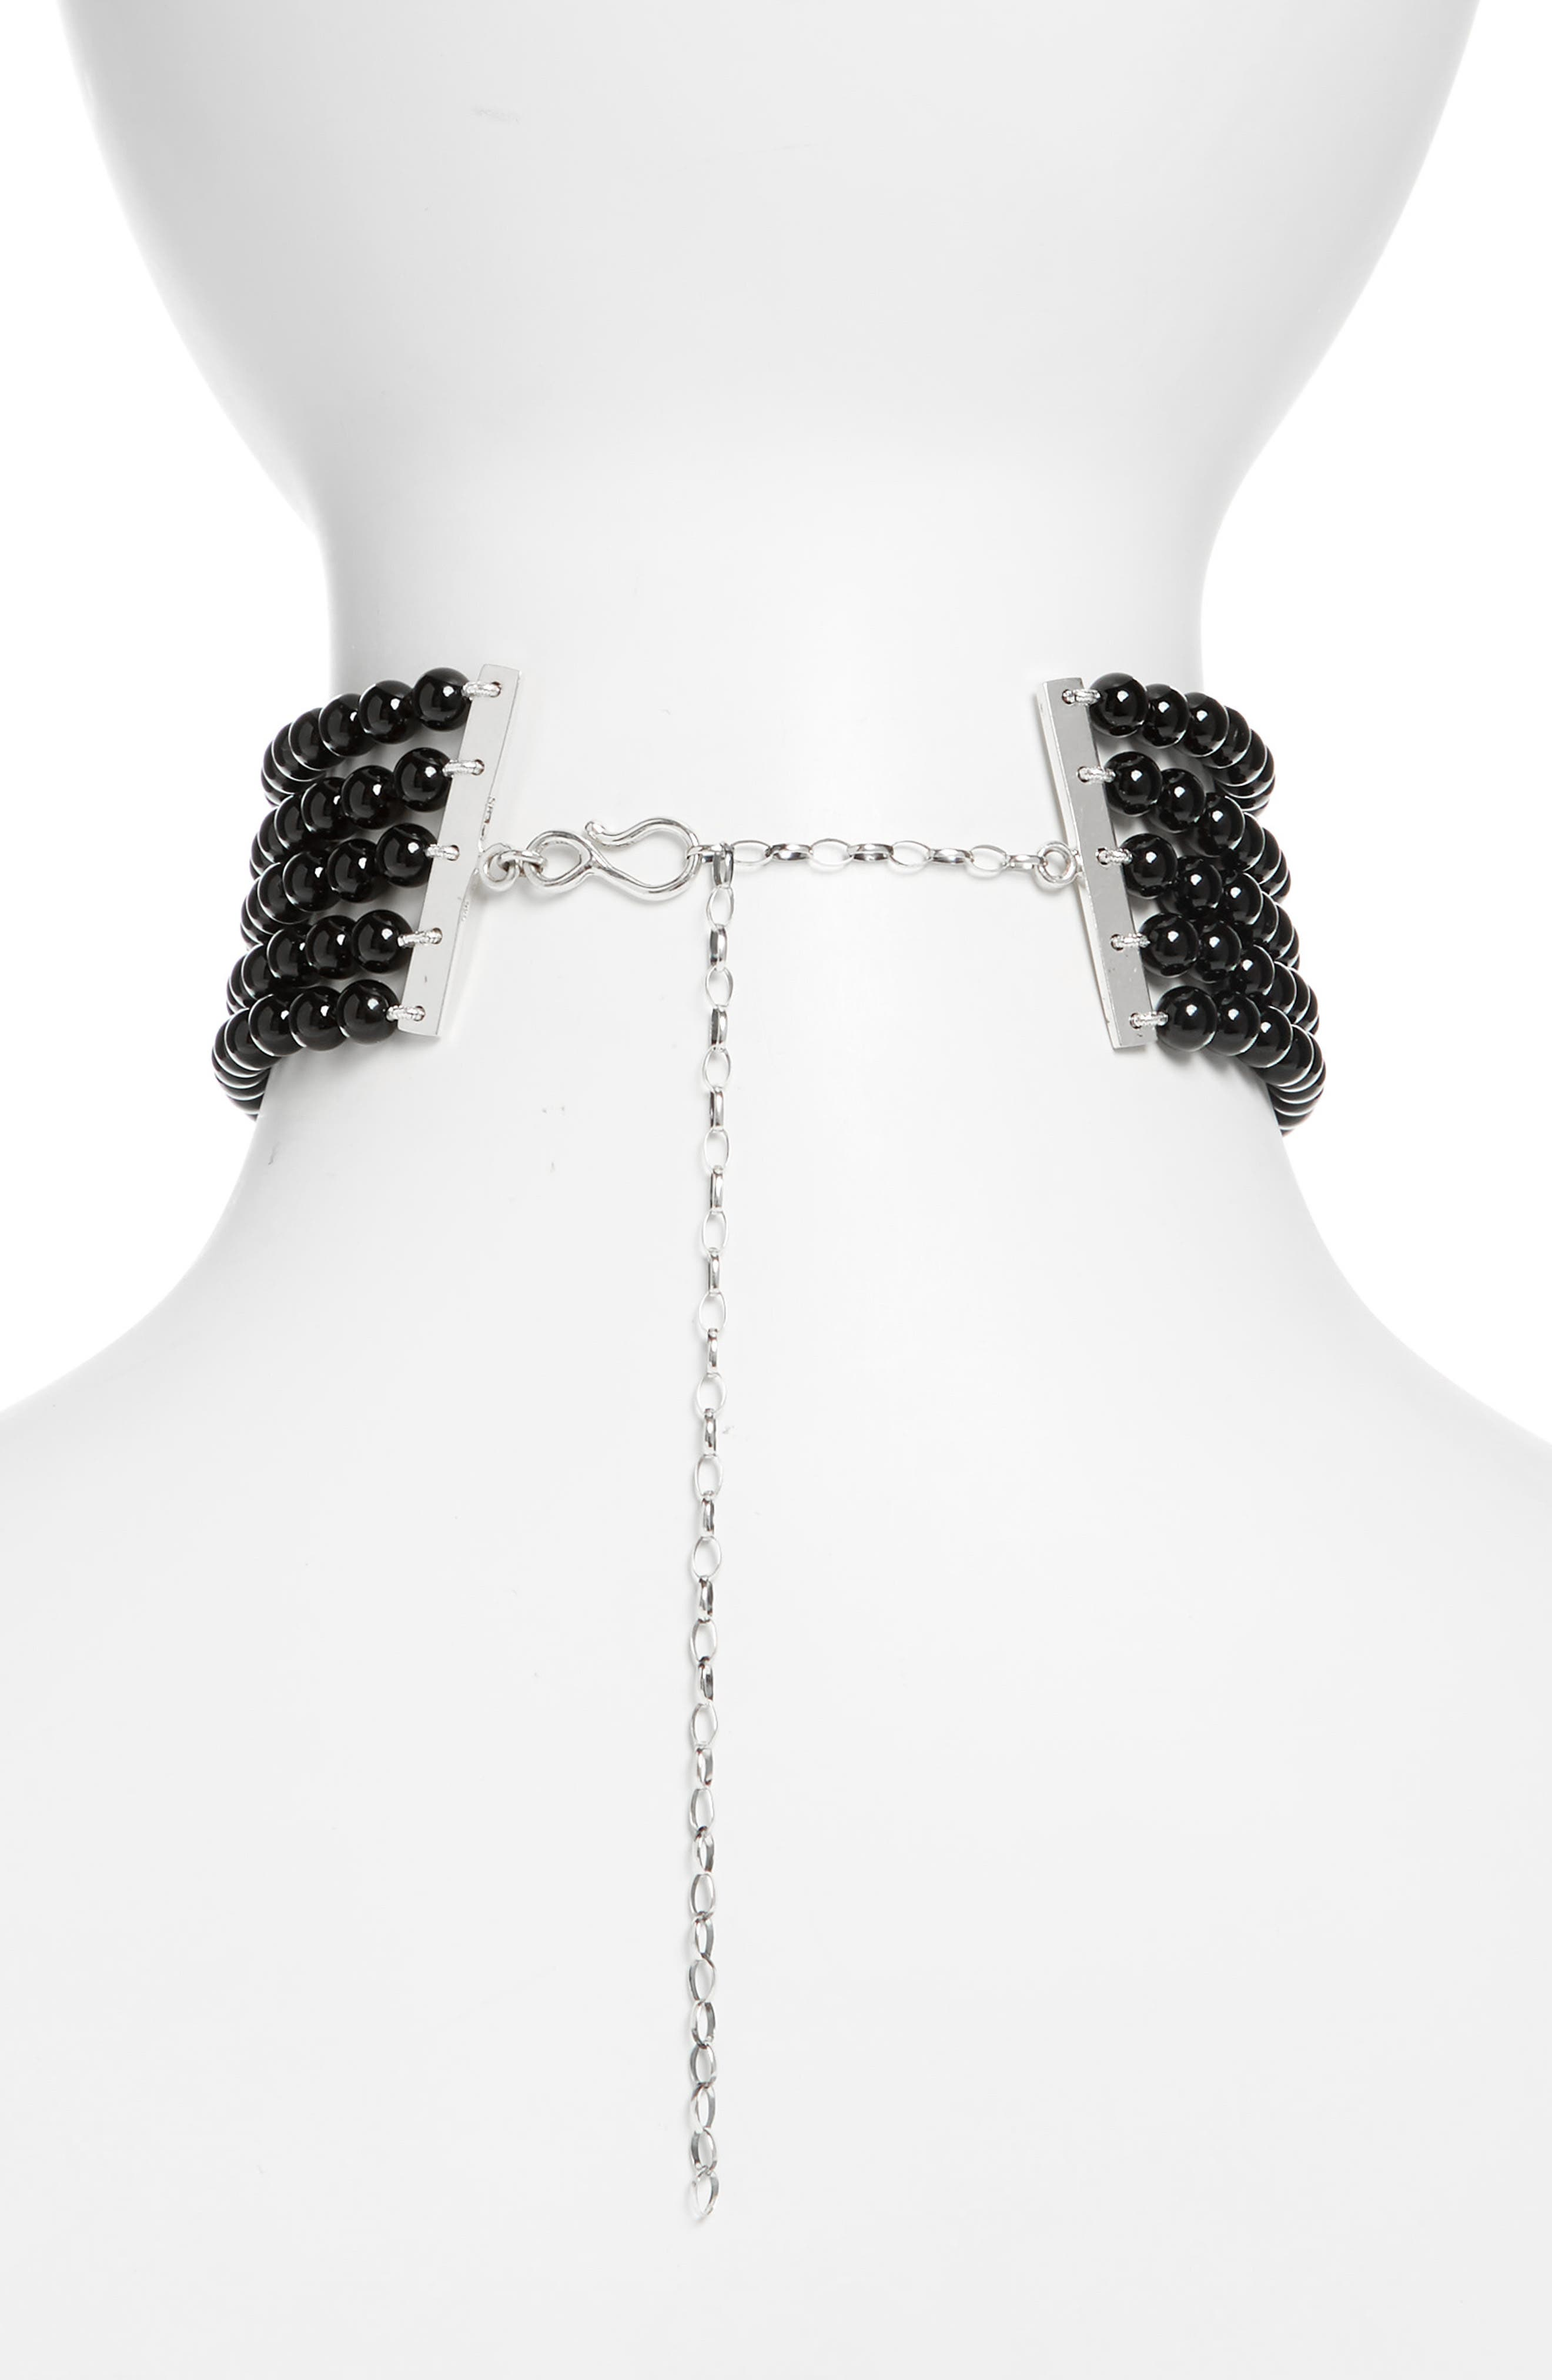 Onyx & Sterling Silver Choker,                             Alternate thumbnail 3, color,                             STERLING SILVER